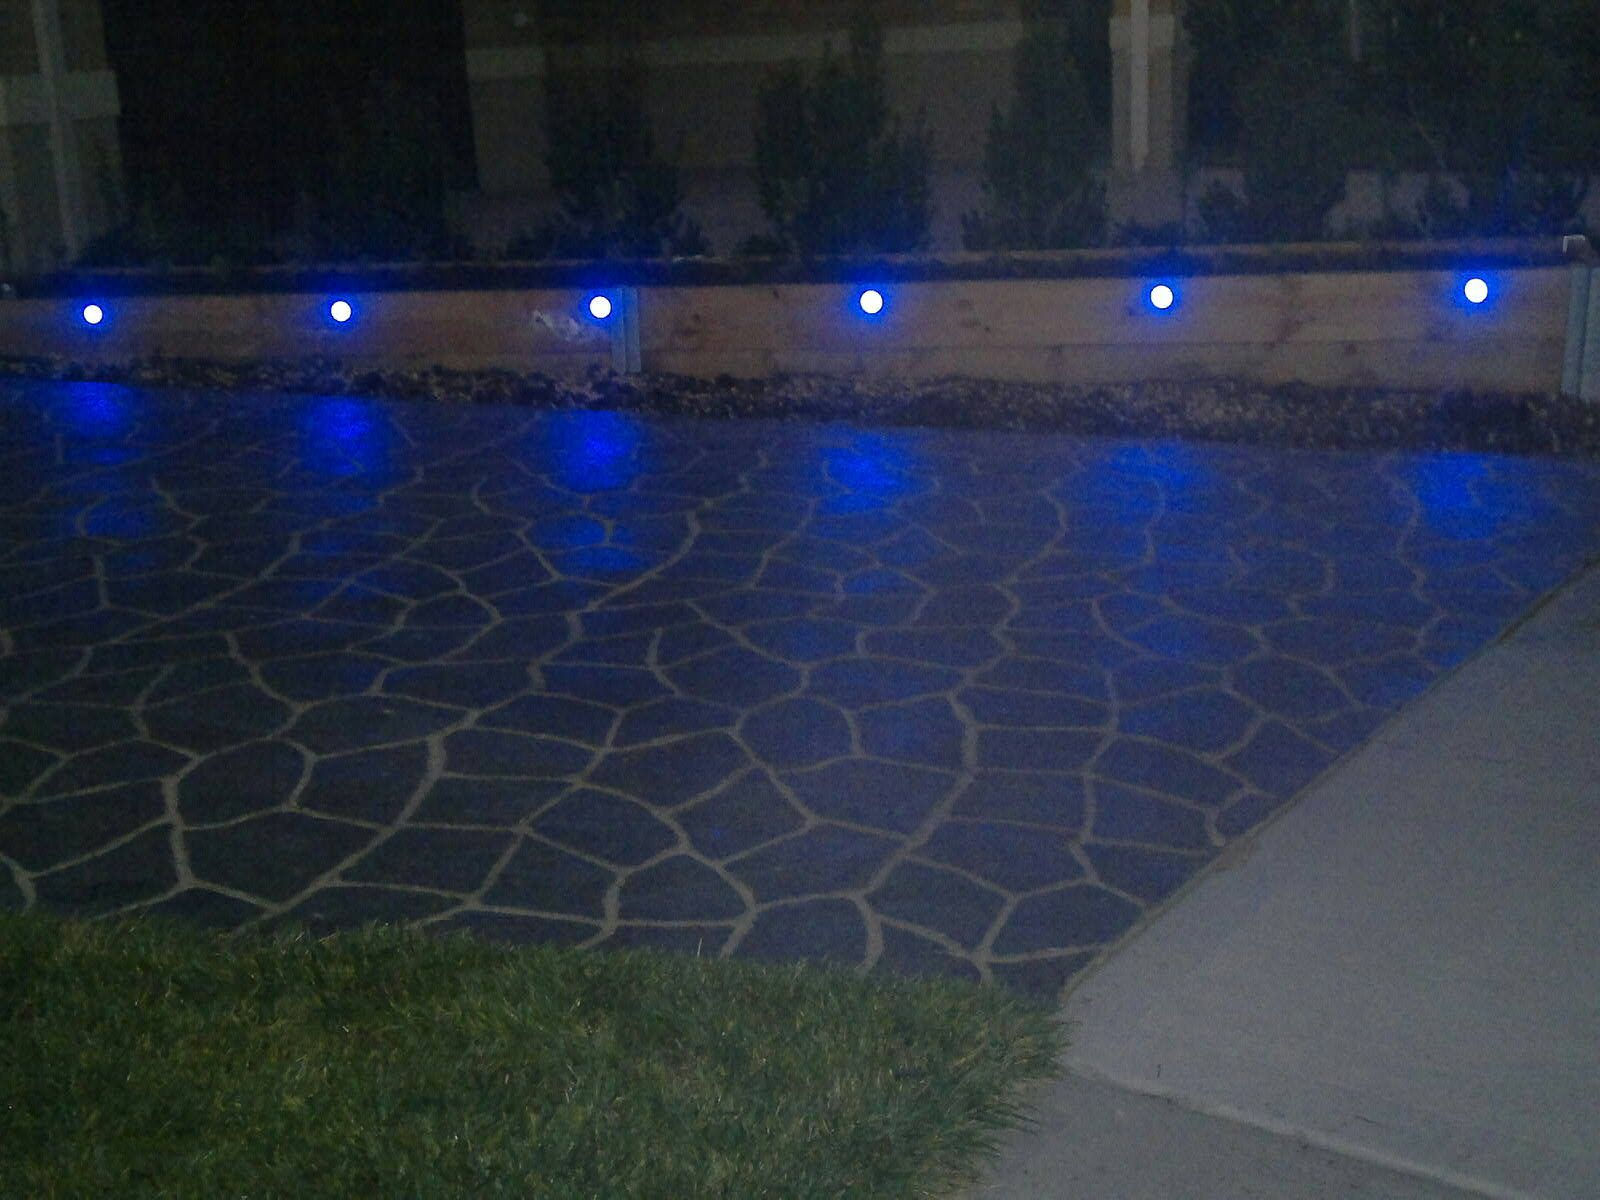 One of our customers installed their deck lights in a driveway one of our customers installed their deck lights in a driveway garden planter box turning aloadofball Image collections